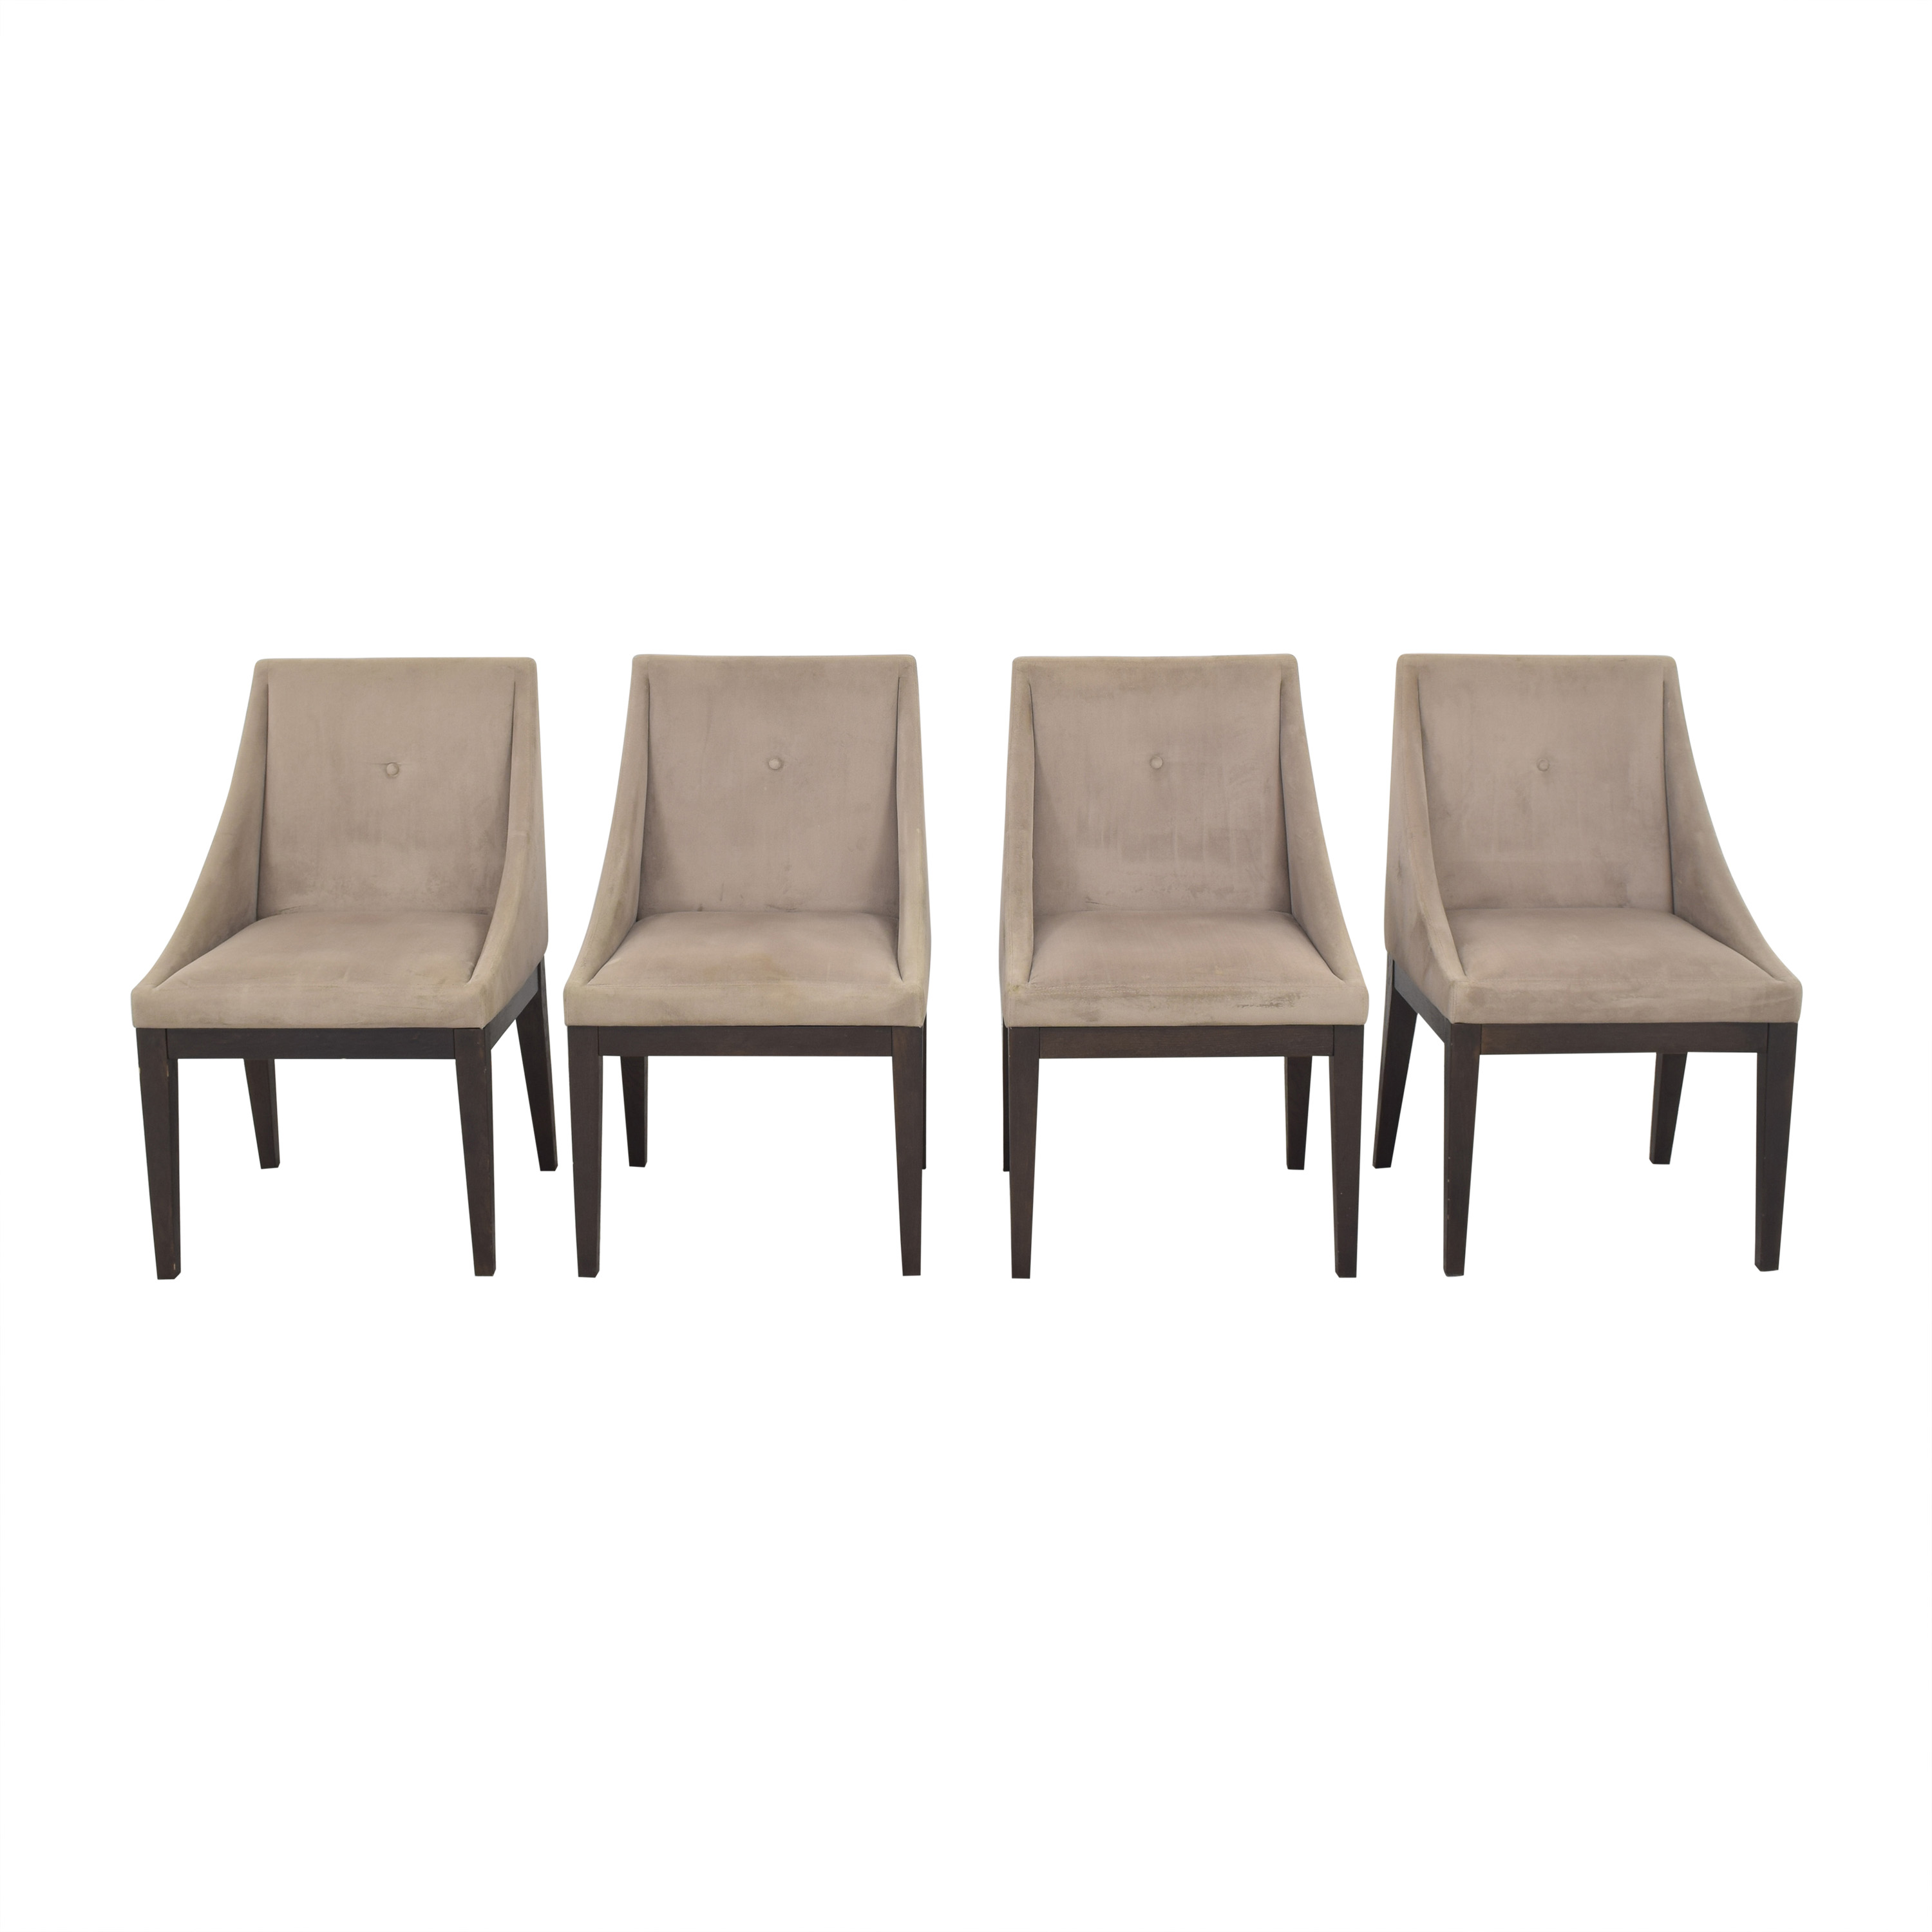 West Elm West Elm Upholstered Dining Chairs used